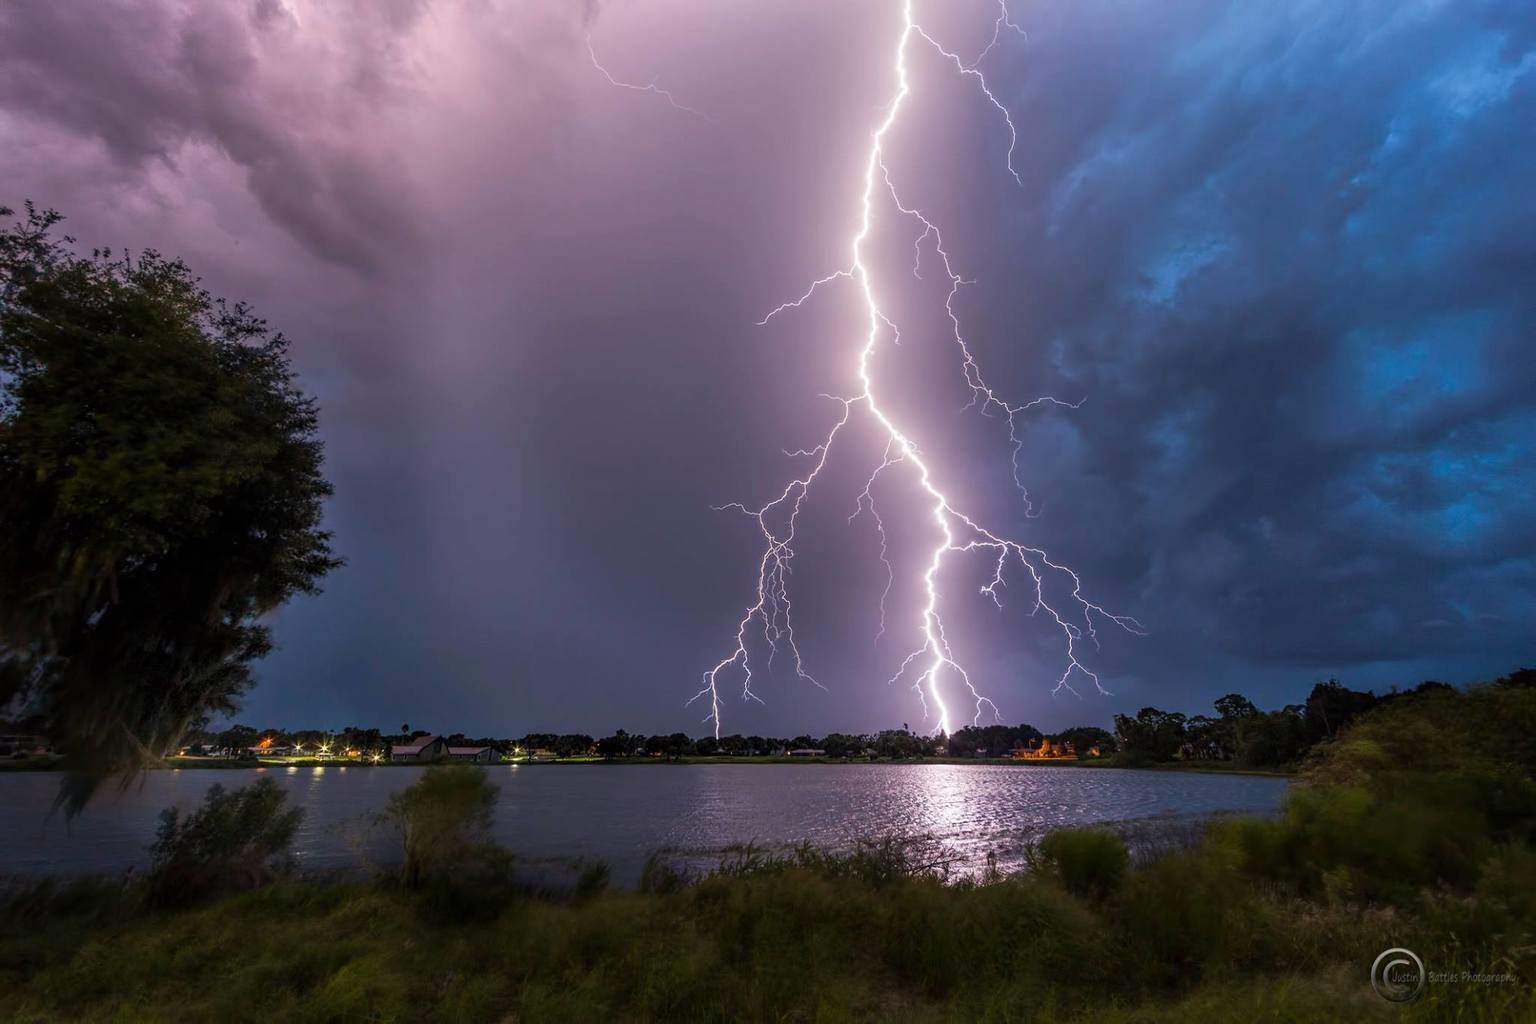 Pretty close strike at Lake Lillian in Avon Park, Florida yesterday around sunset as this storm fired up.14mm full frame, not cropped